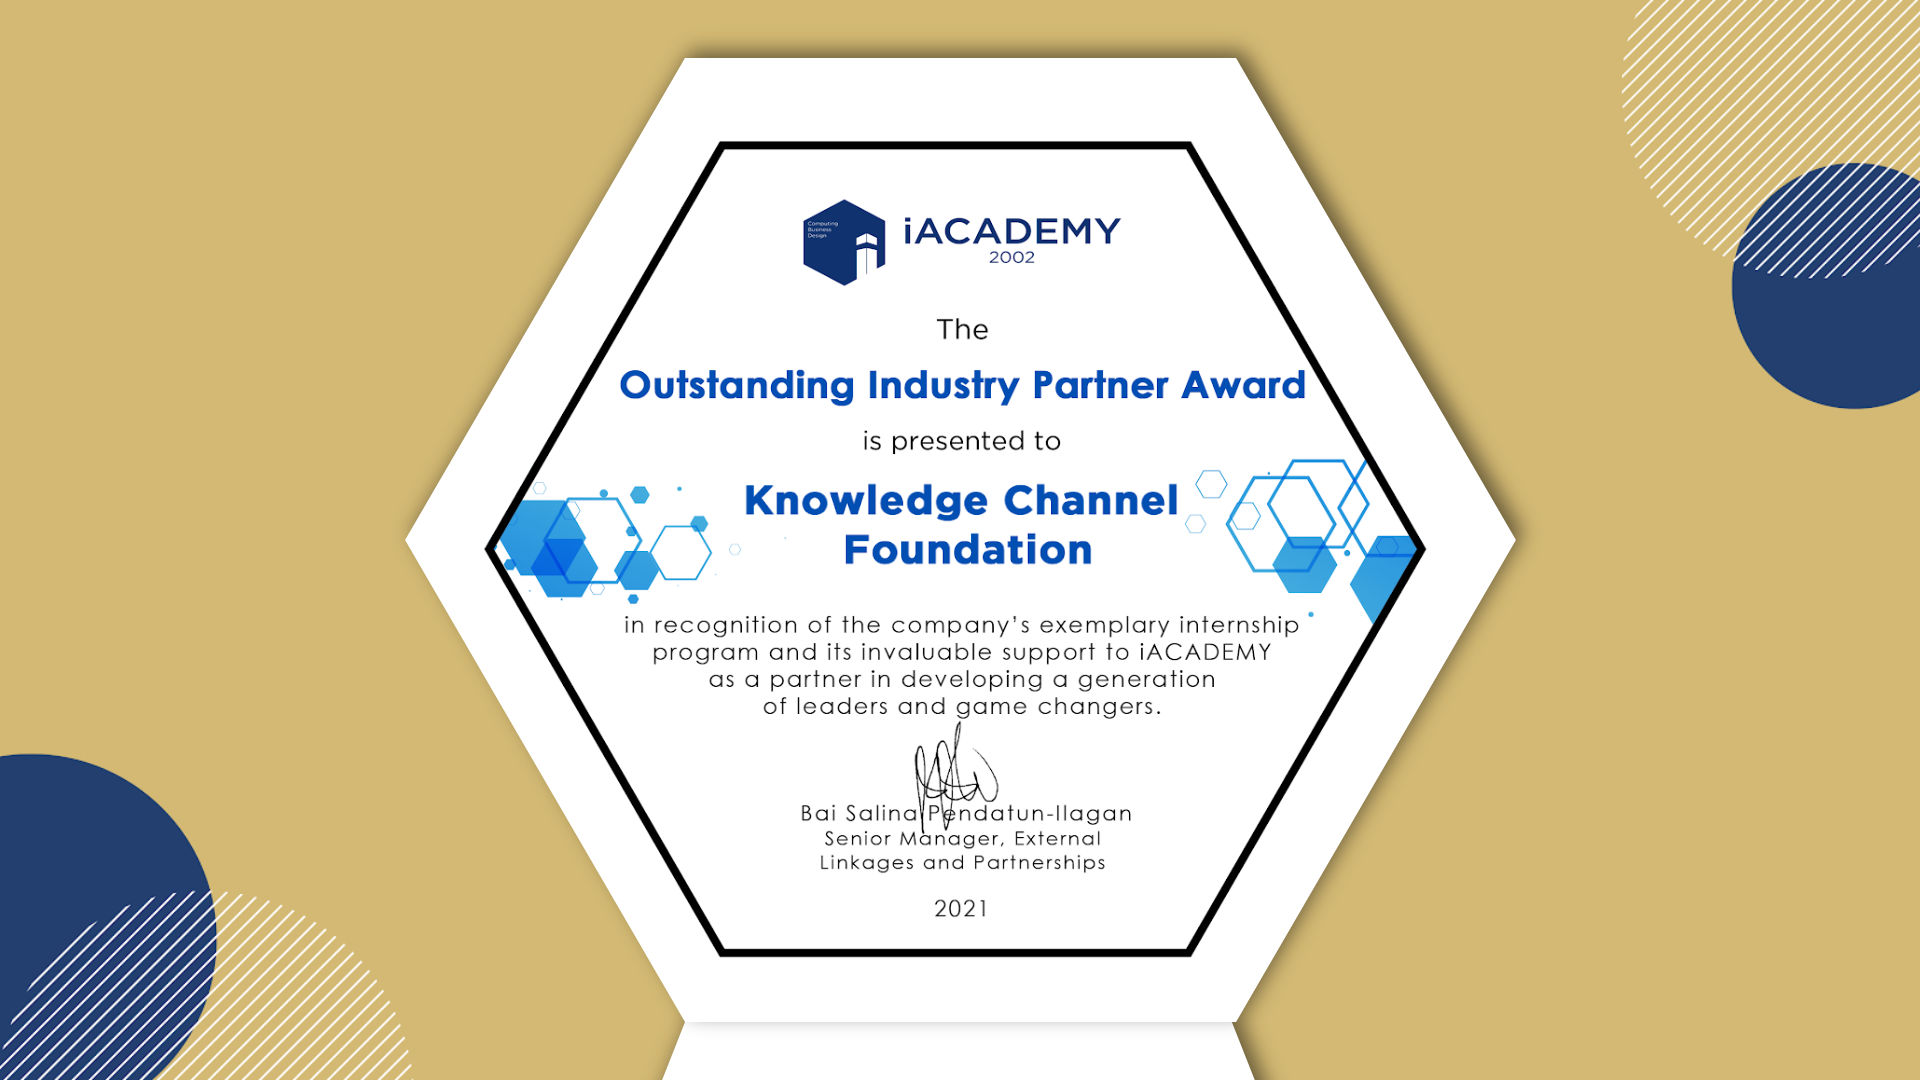 Knowledge Channel cited for work  in producing educational content